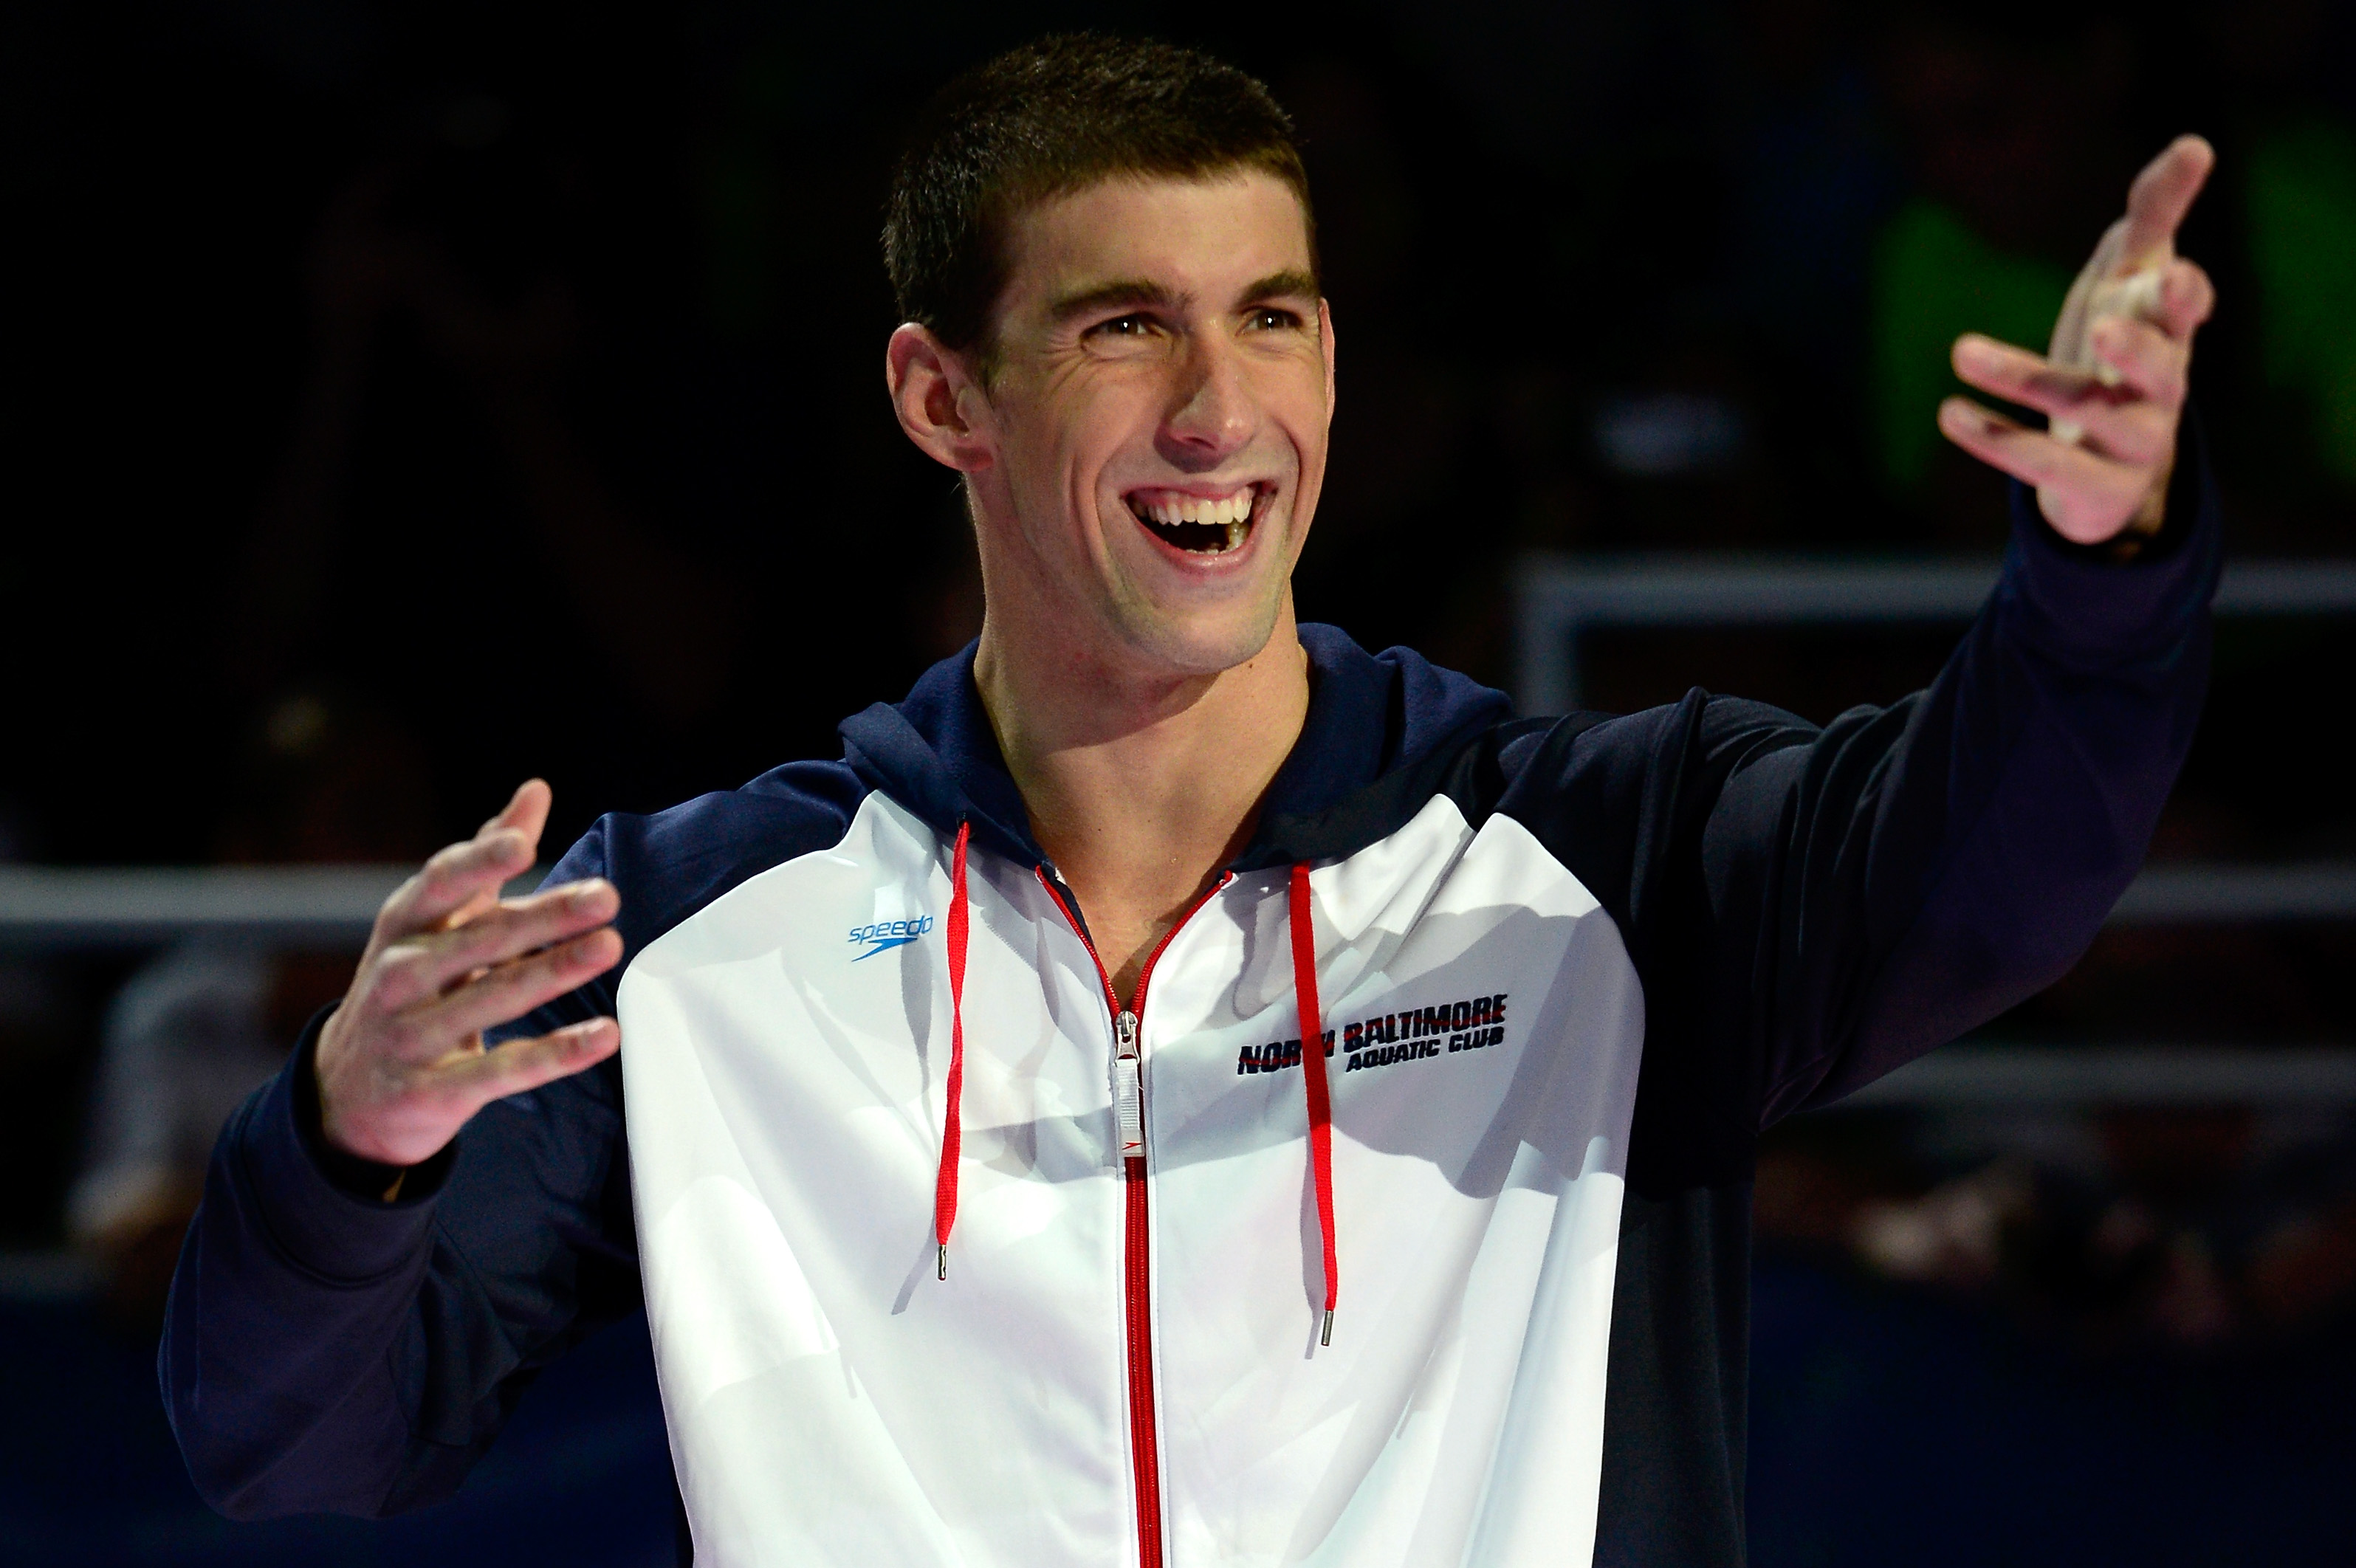 Michael Phelps celebrates winning 200m butterfly. (Getty Images)